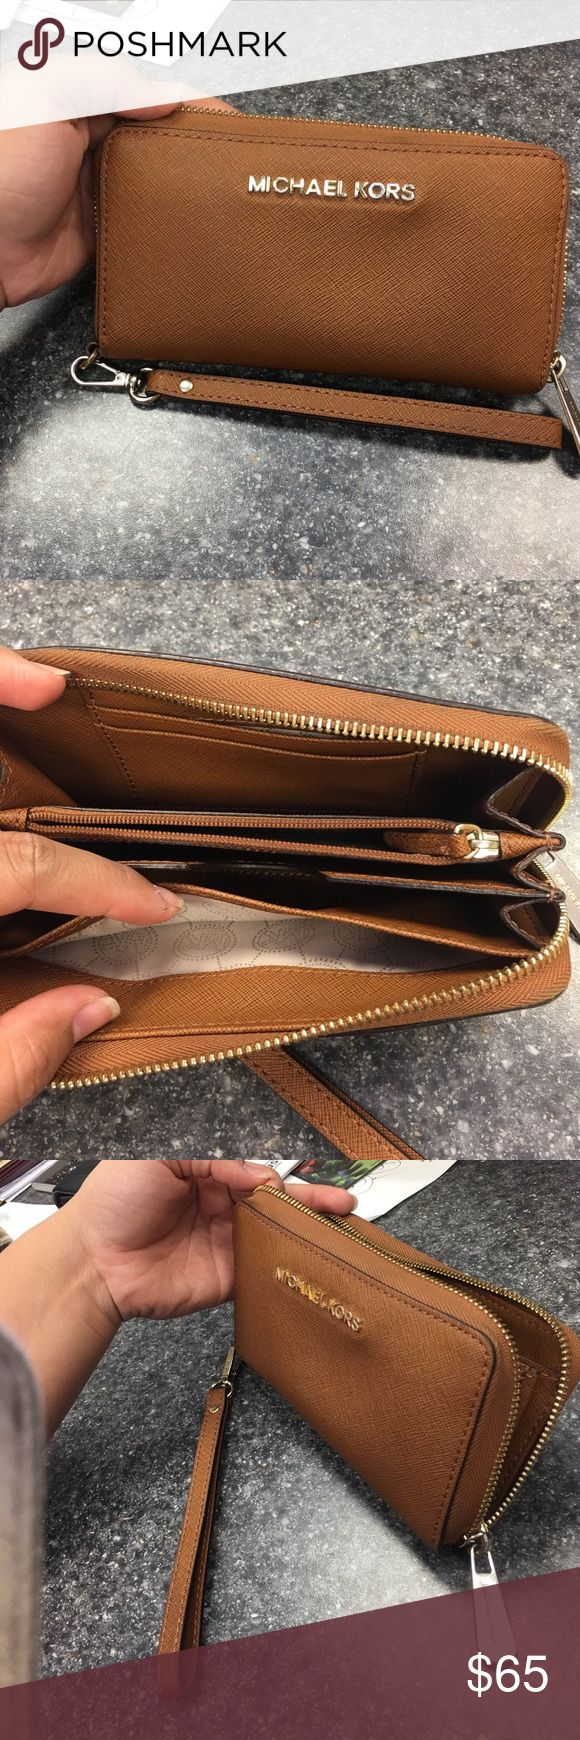 """Michael Kors """"Luggage Wristlet"""" Handy and pretty piece to have MICHAEL Michael Kors Bags Clutches & Wristlets"""